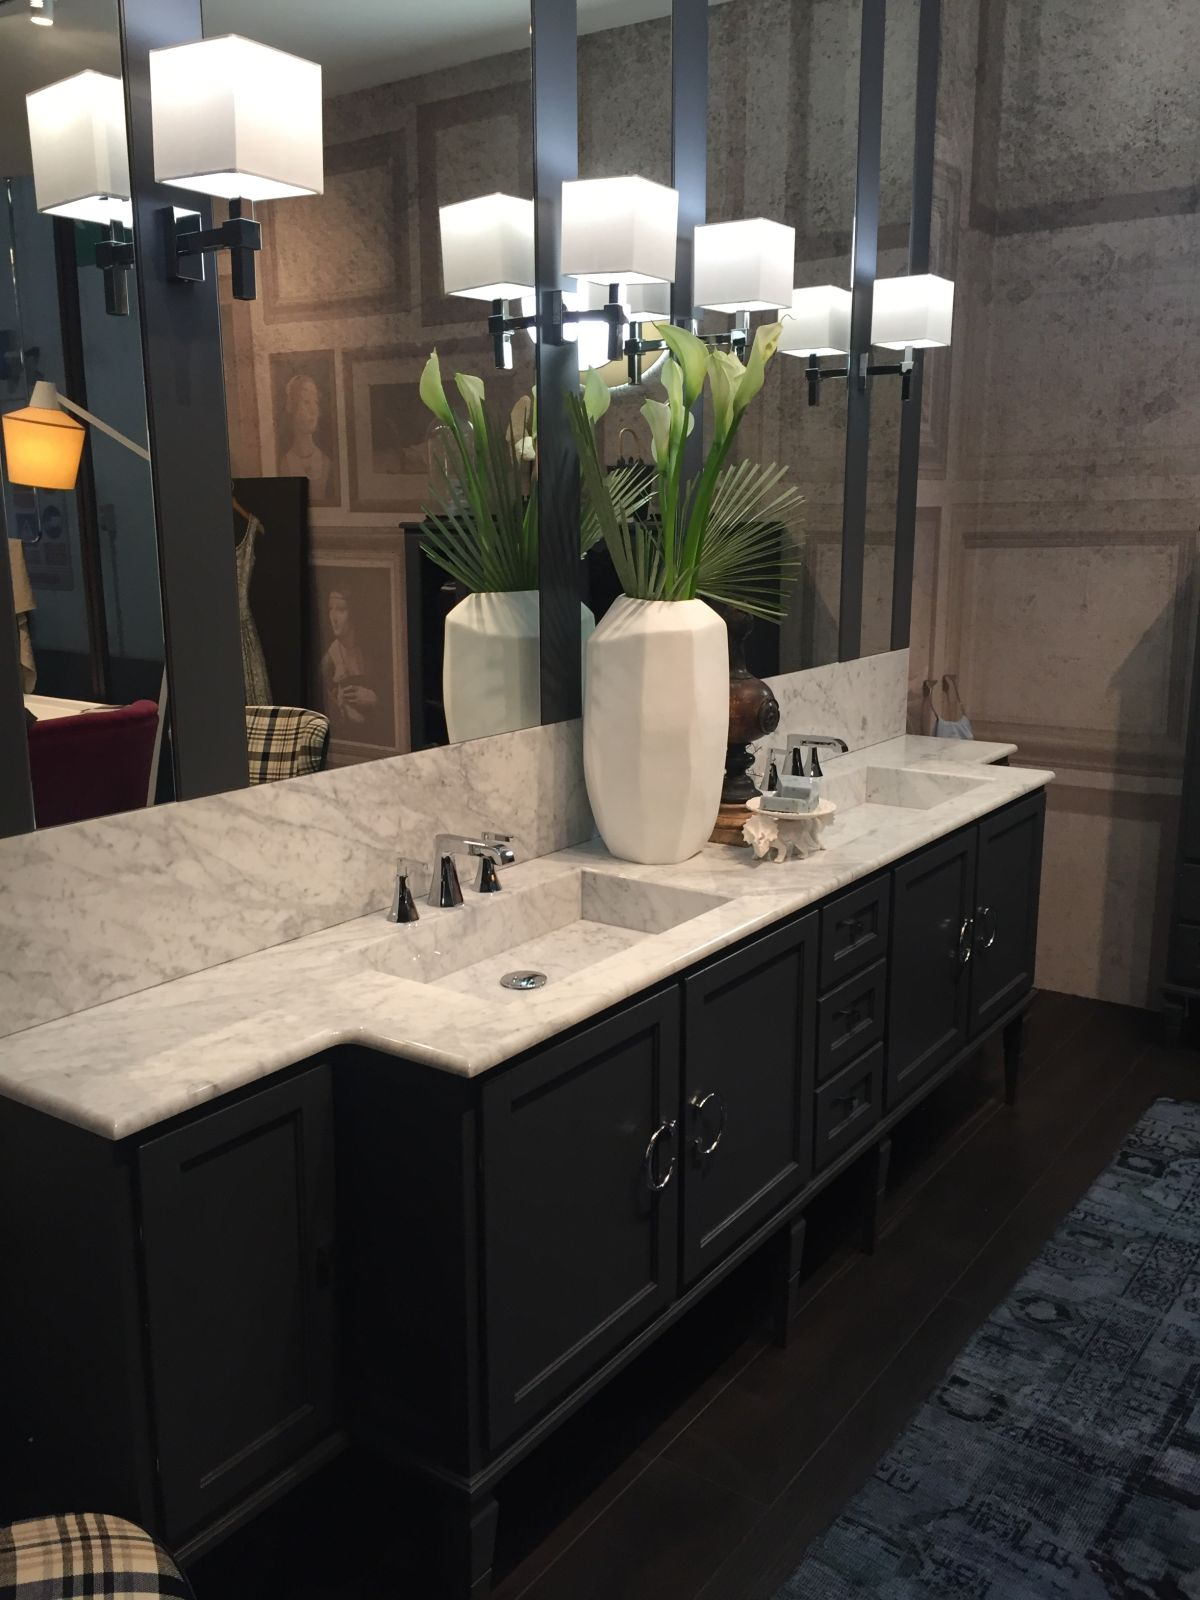 Luxury bathroom with marble accents